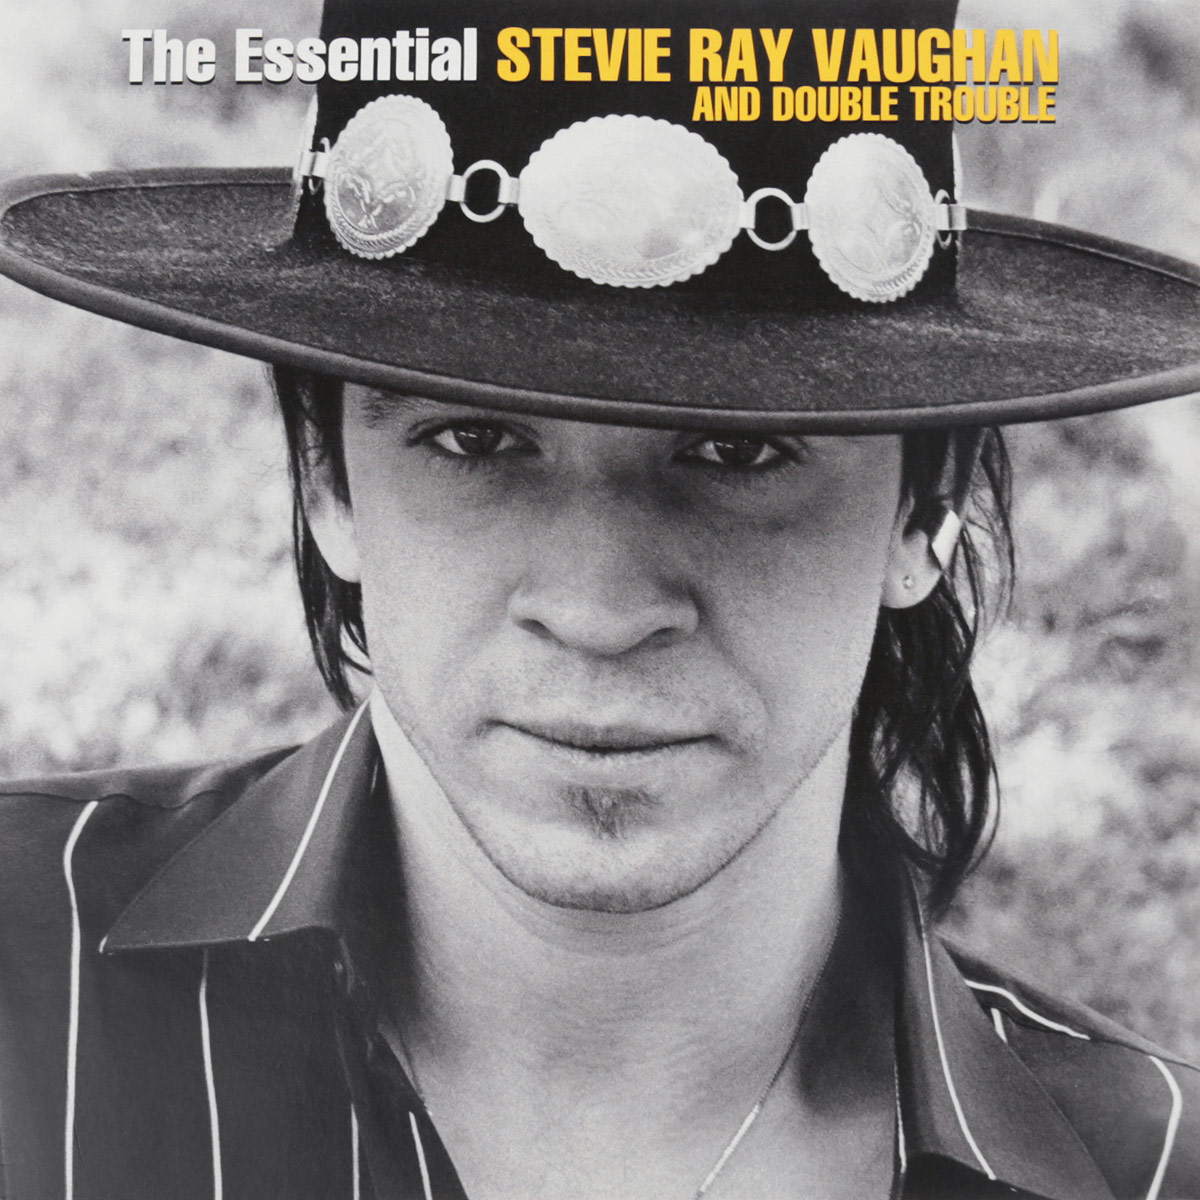 цена на Stevie Ray Vaughan & Double Trouble Stivie Ray Vaughan And Double Trouble. The Essential (2 LP)